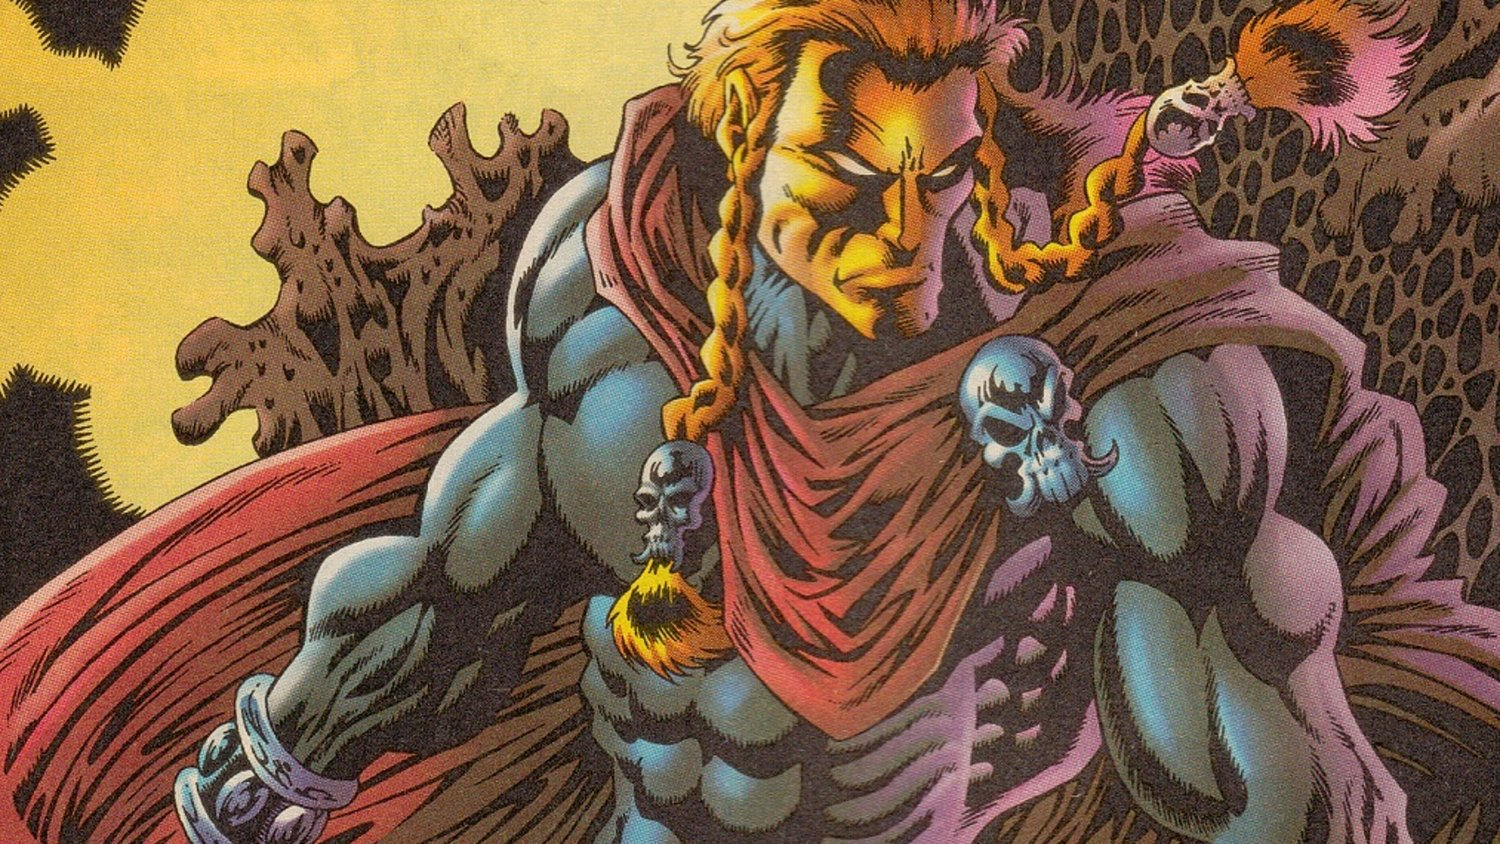 Adam Warlock Originally Had a Major Role in GUARDIANS VOL. 2 But He'll Be in GUARDIANS VOL. 3!